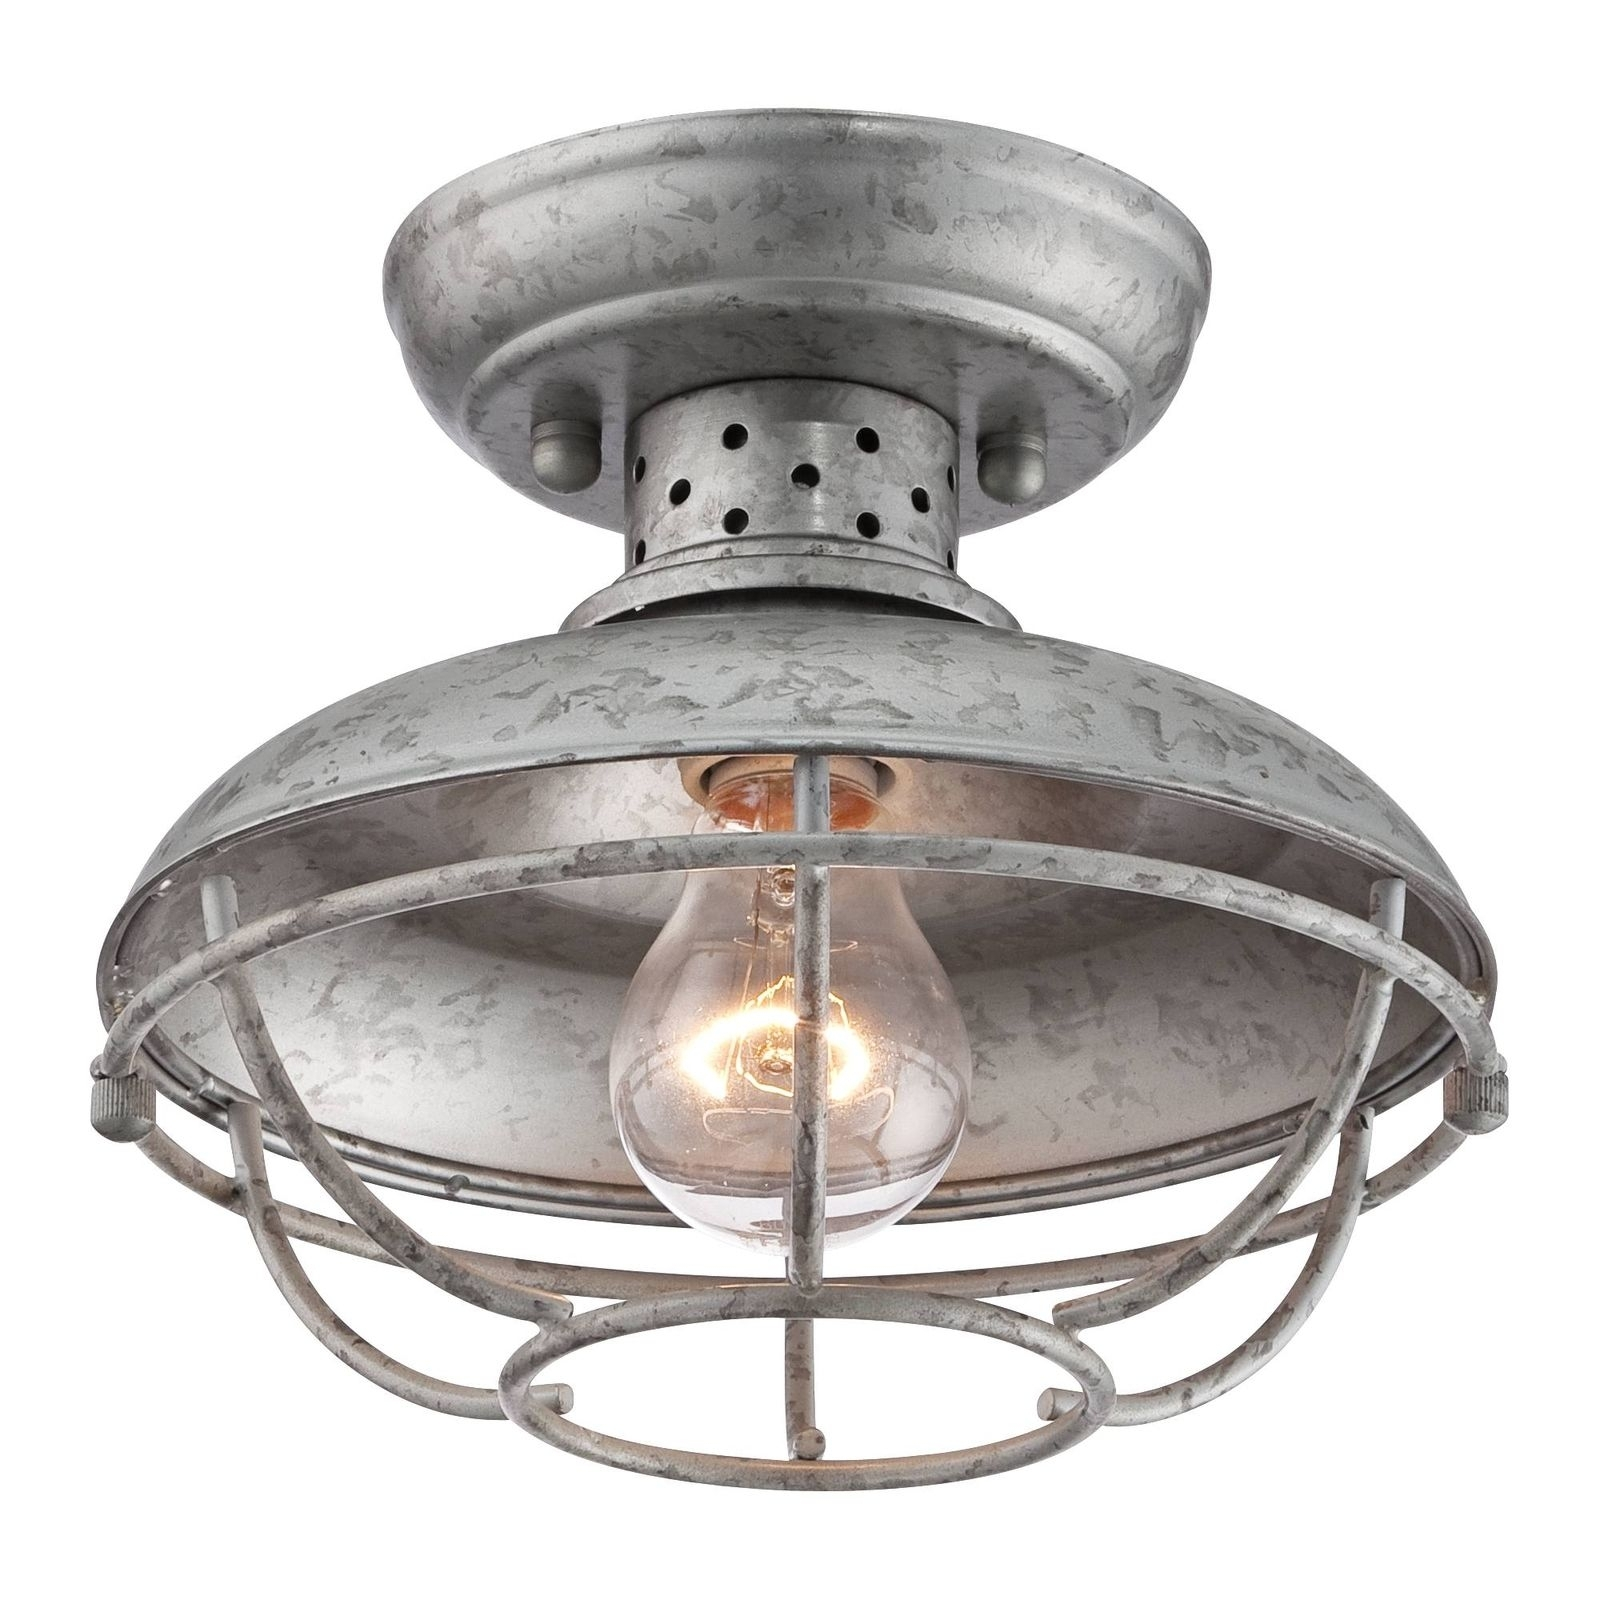 Popular Photo of Outdoor Ceiling Lights At Ebay